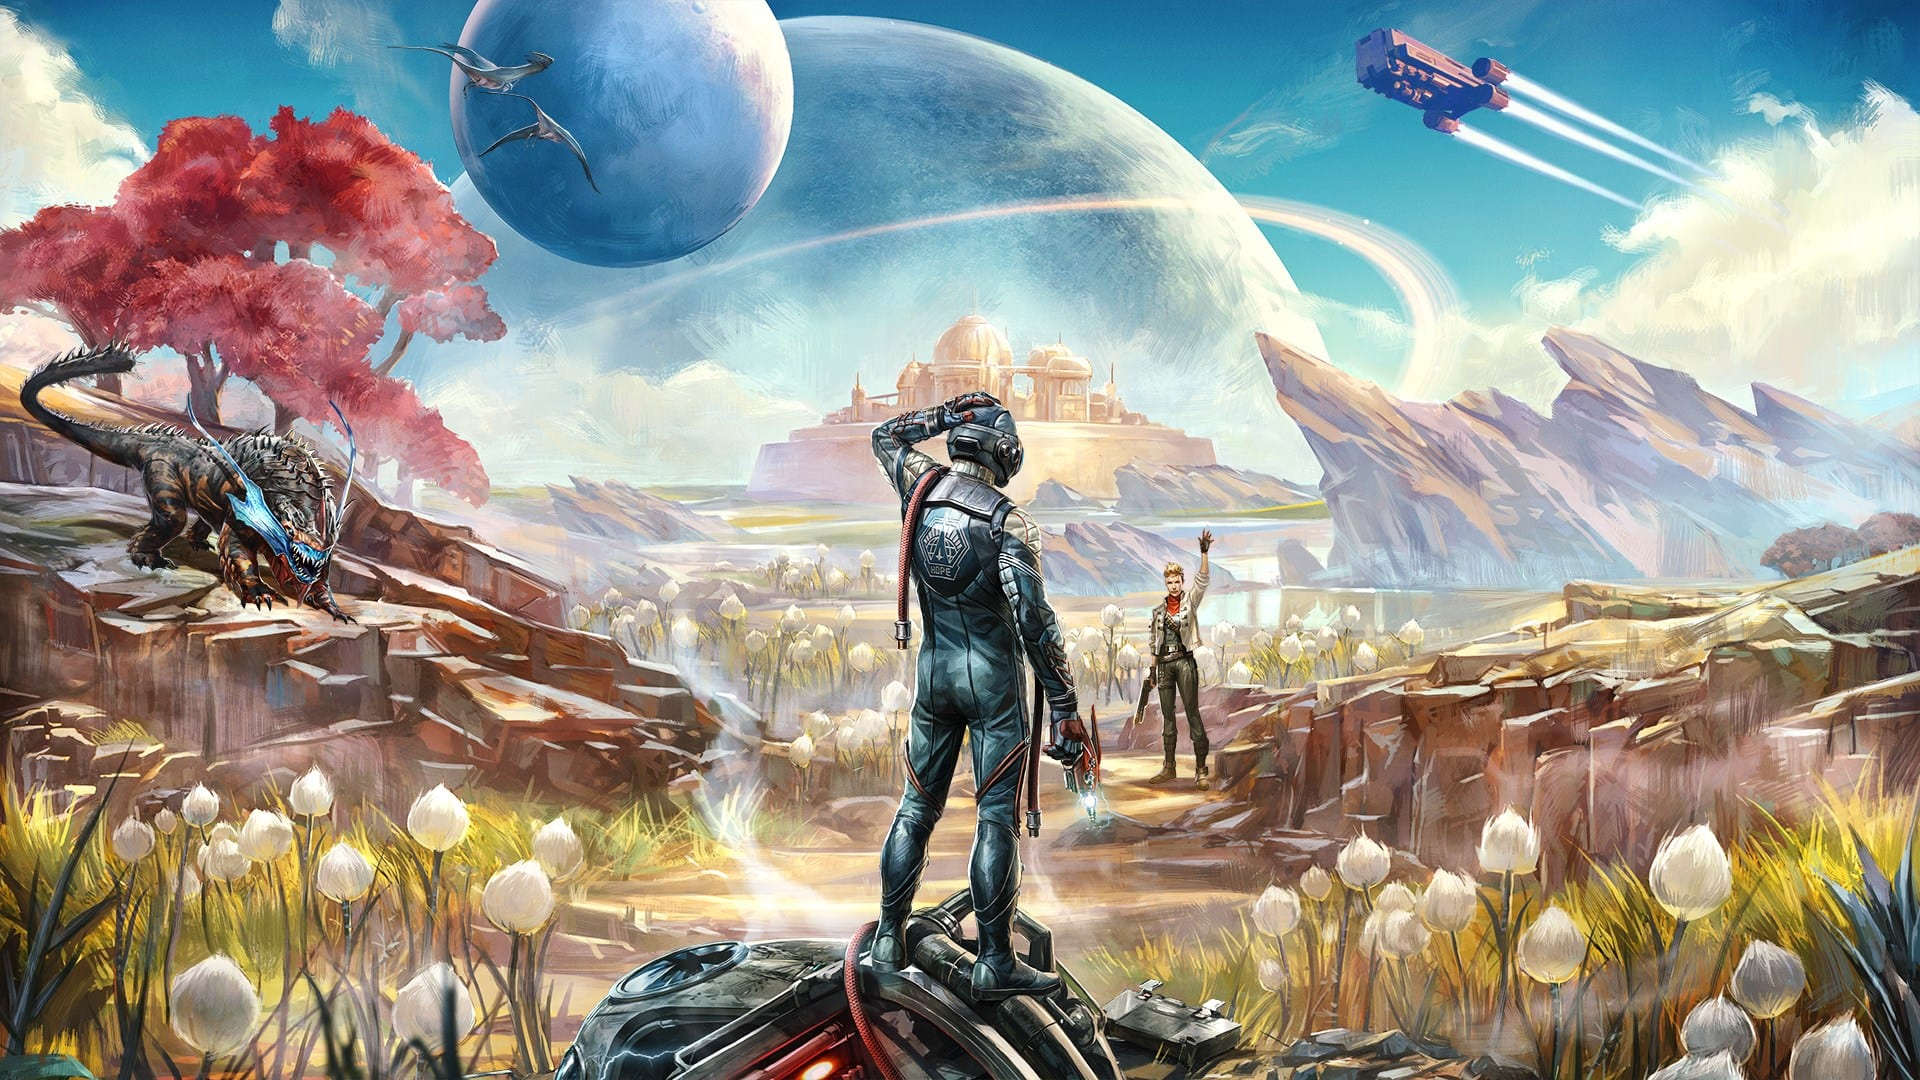 outer worlds, canid's cradle, targeting module, graham, sanjar